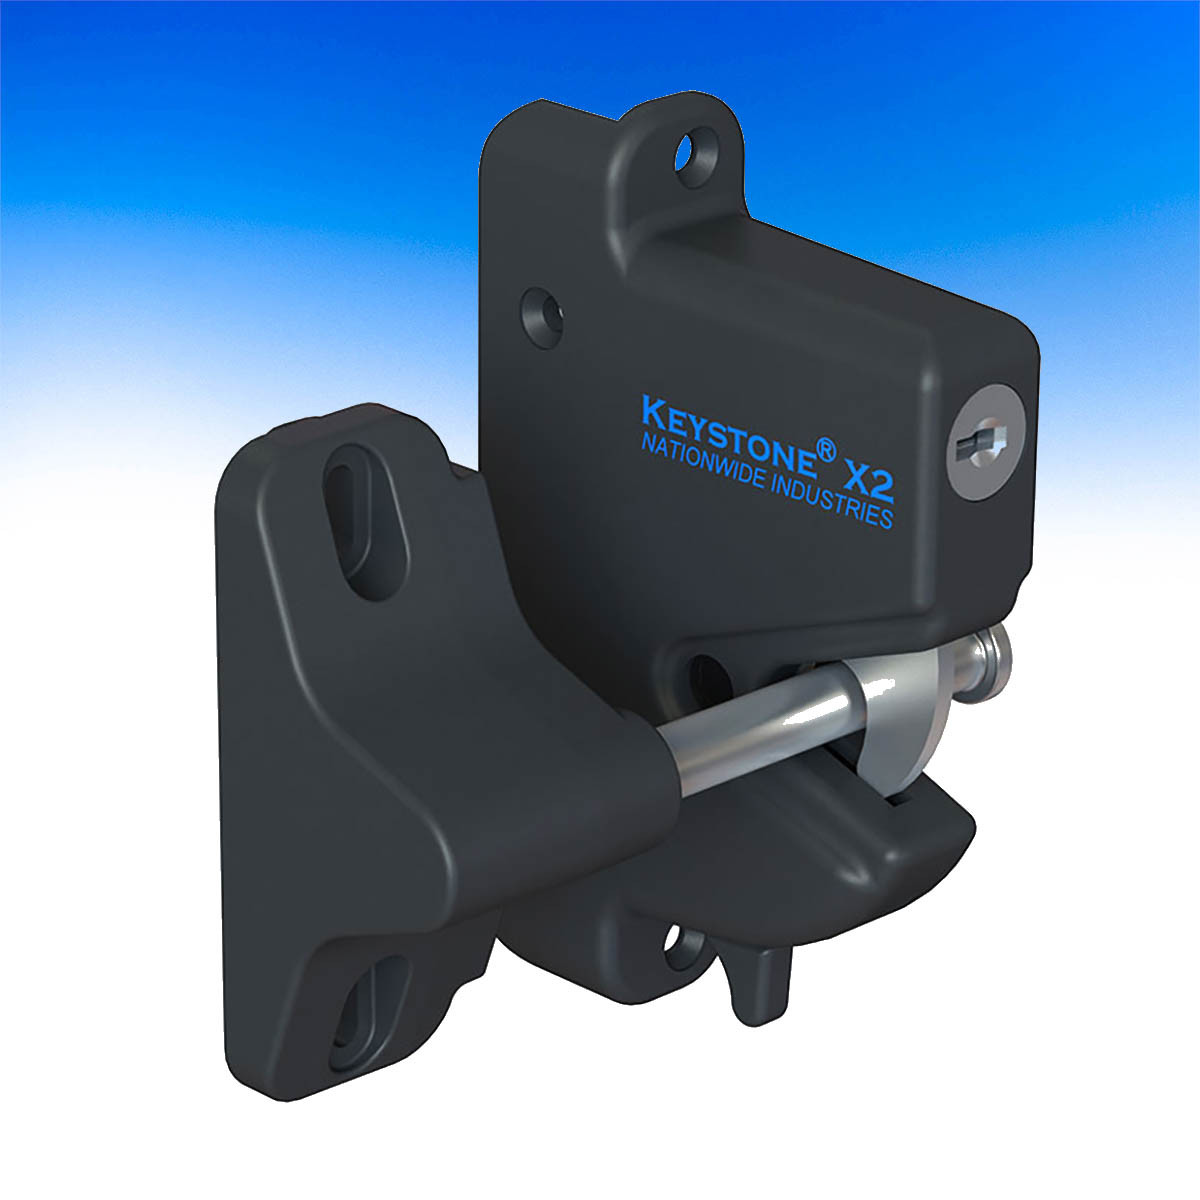 Keystone X2 eXterior Mount Latch by Nationwide Industries